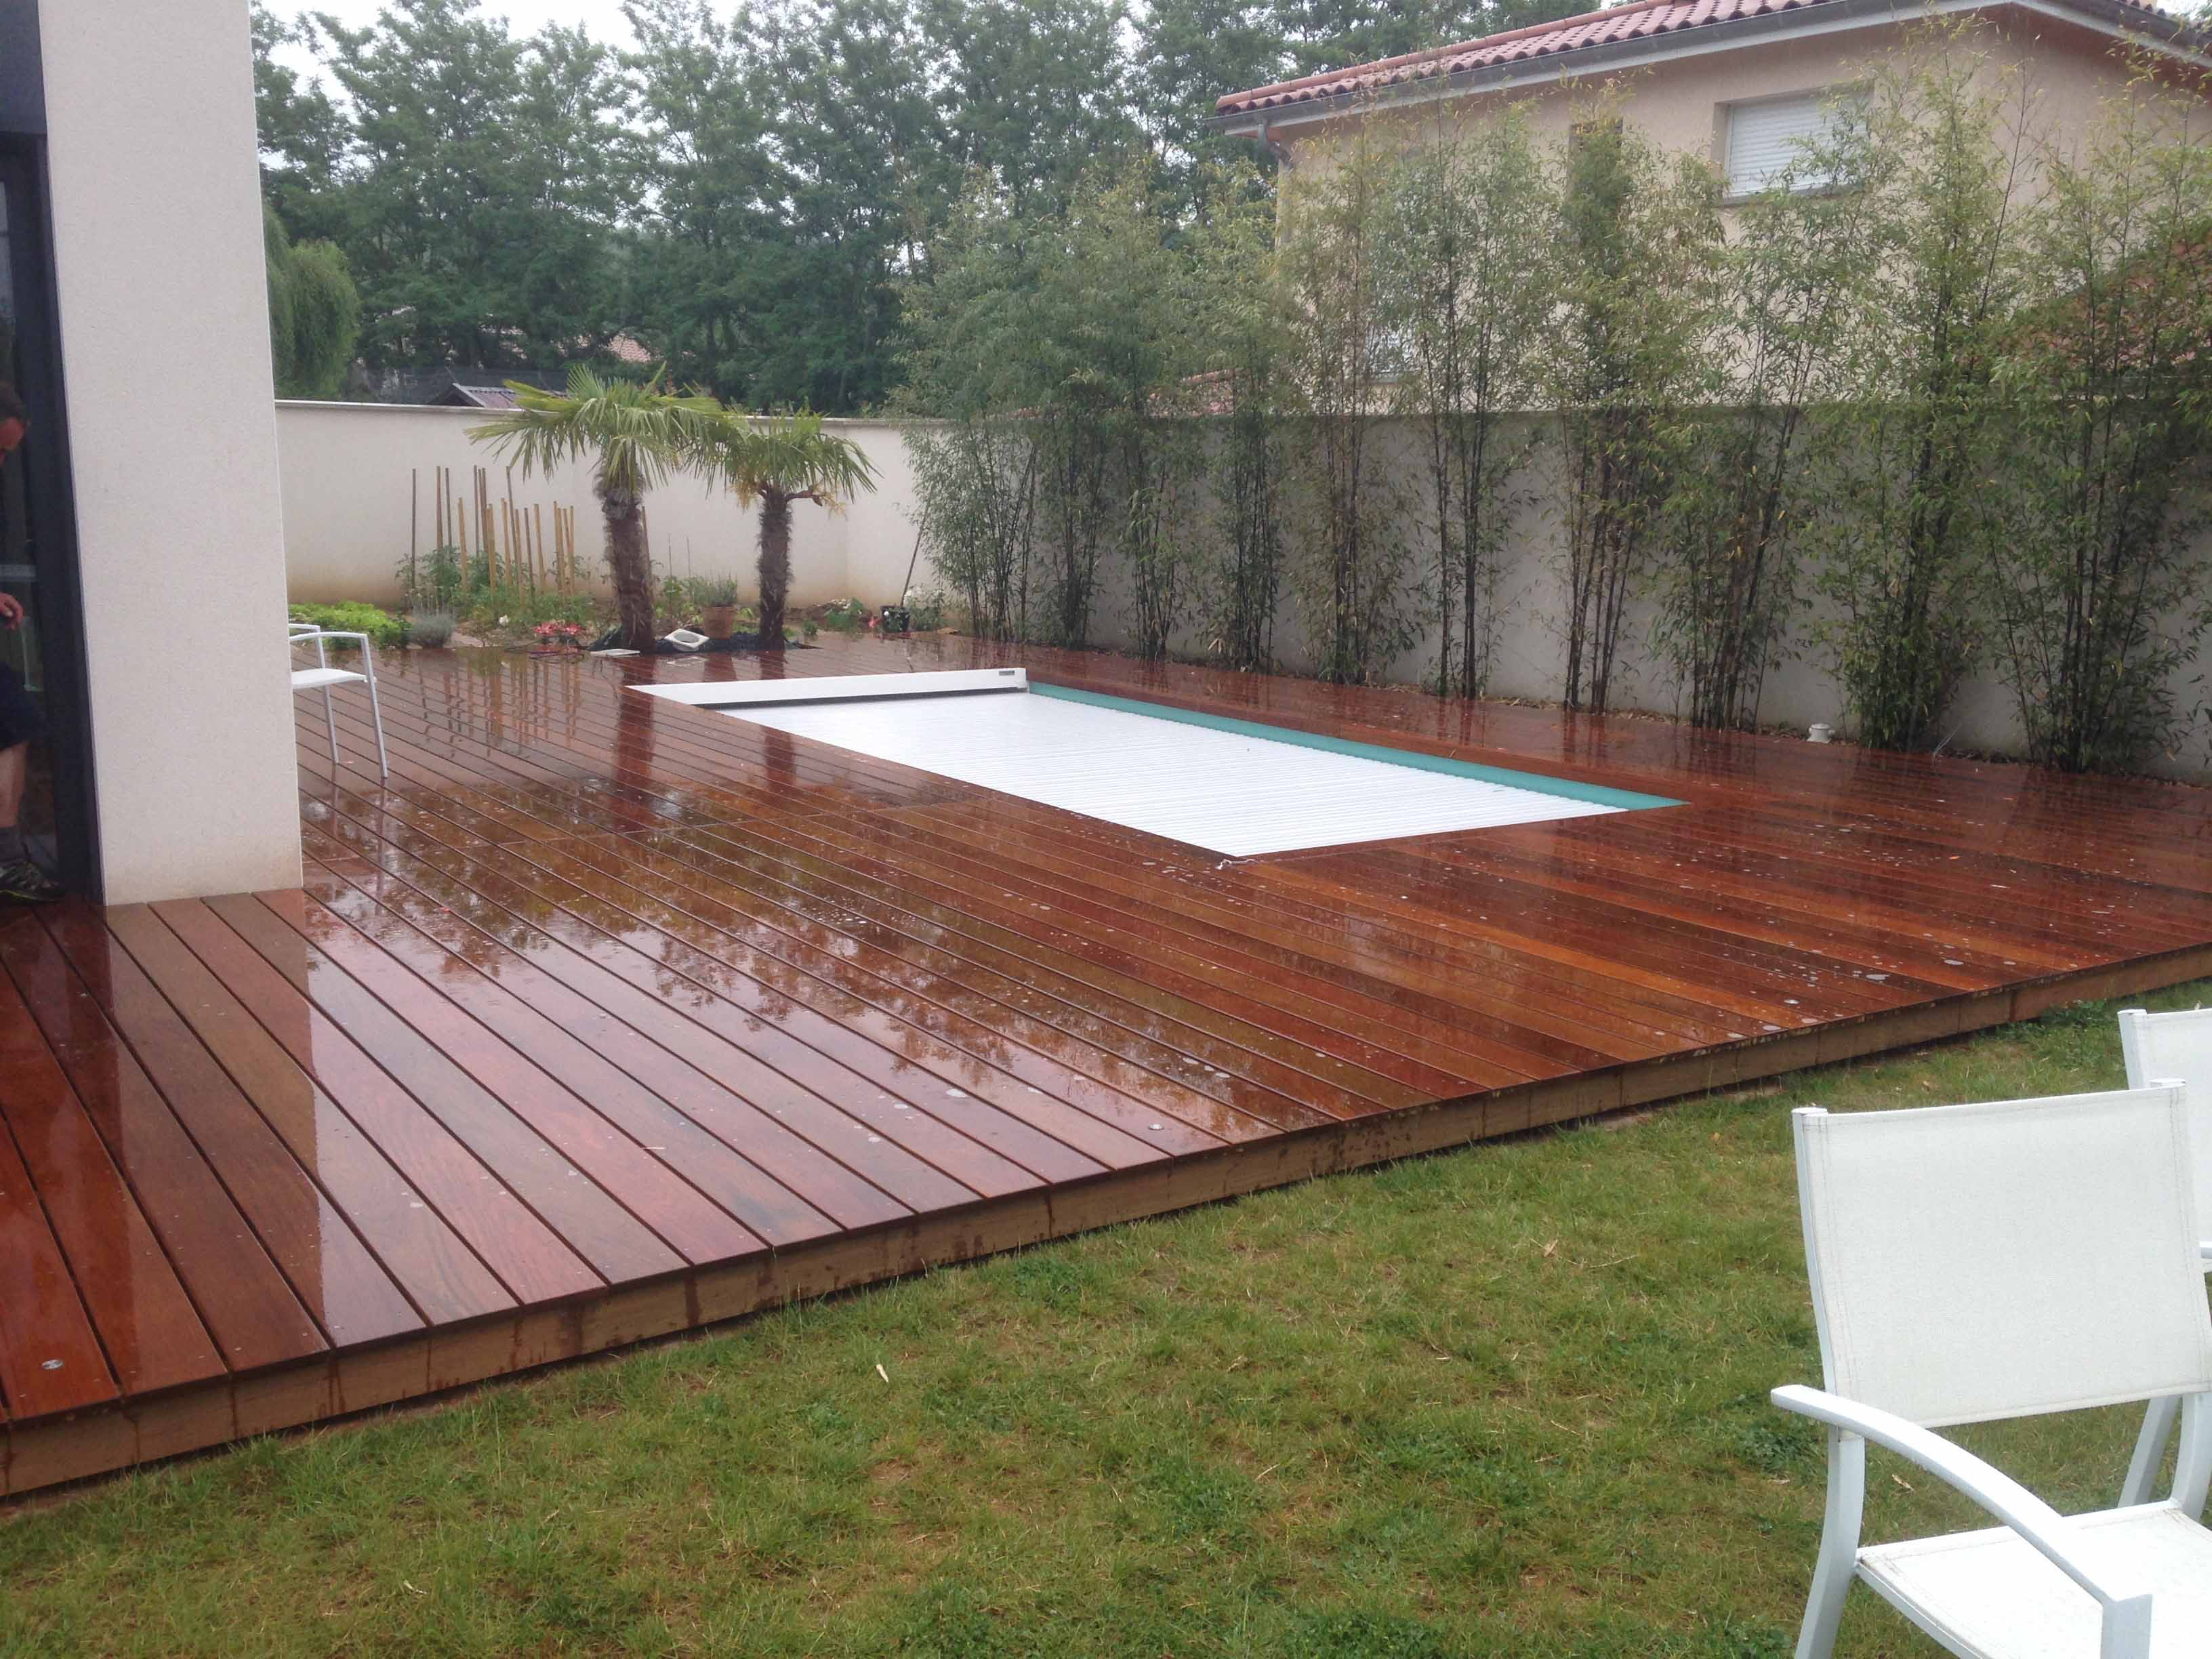 R alisation d 39 une terrasse piscine en bois ip monts d 39 or for Cheb hichem 2015 la piscine